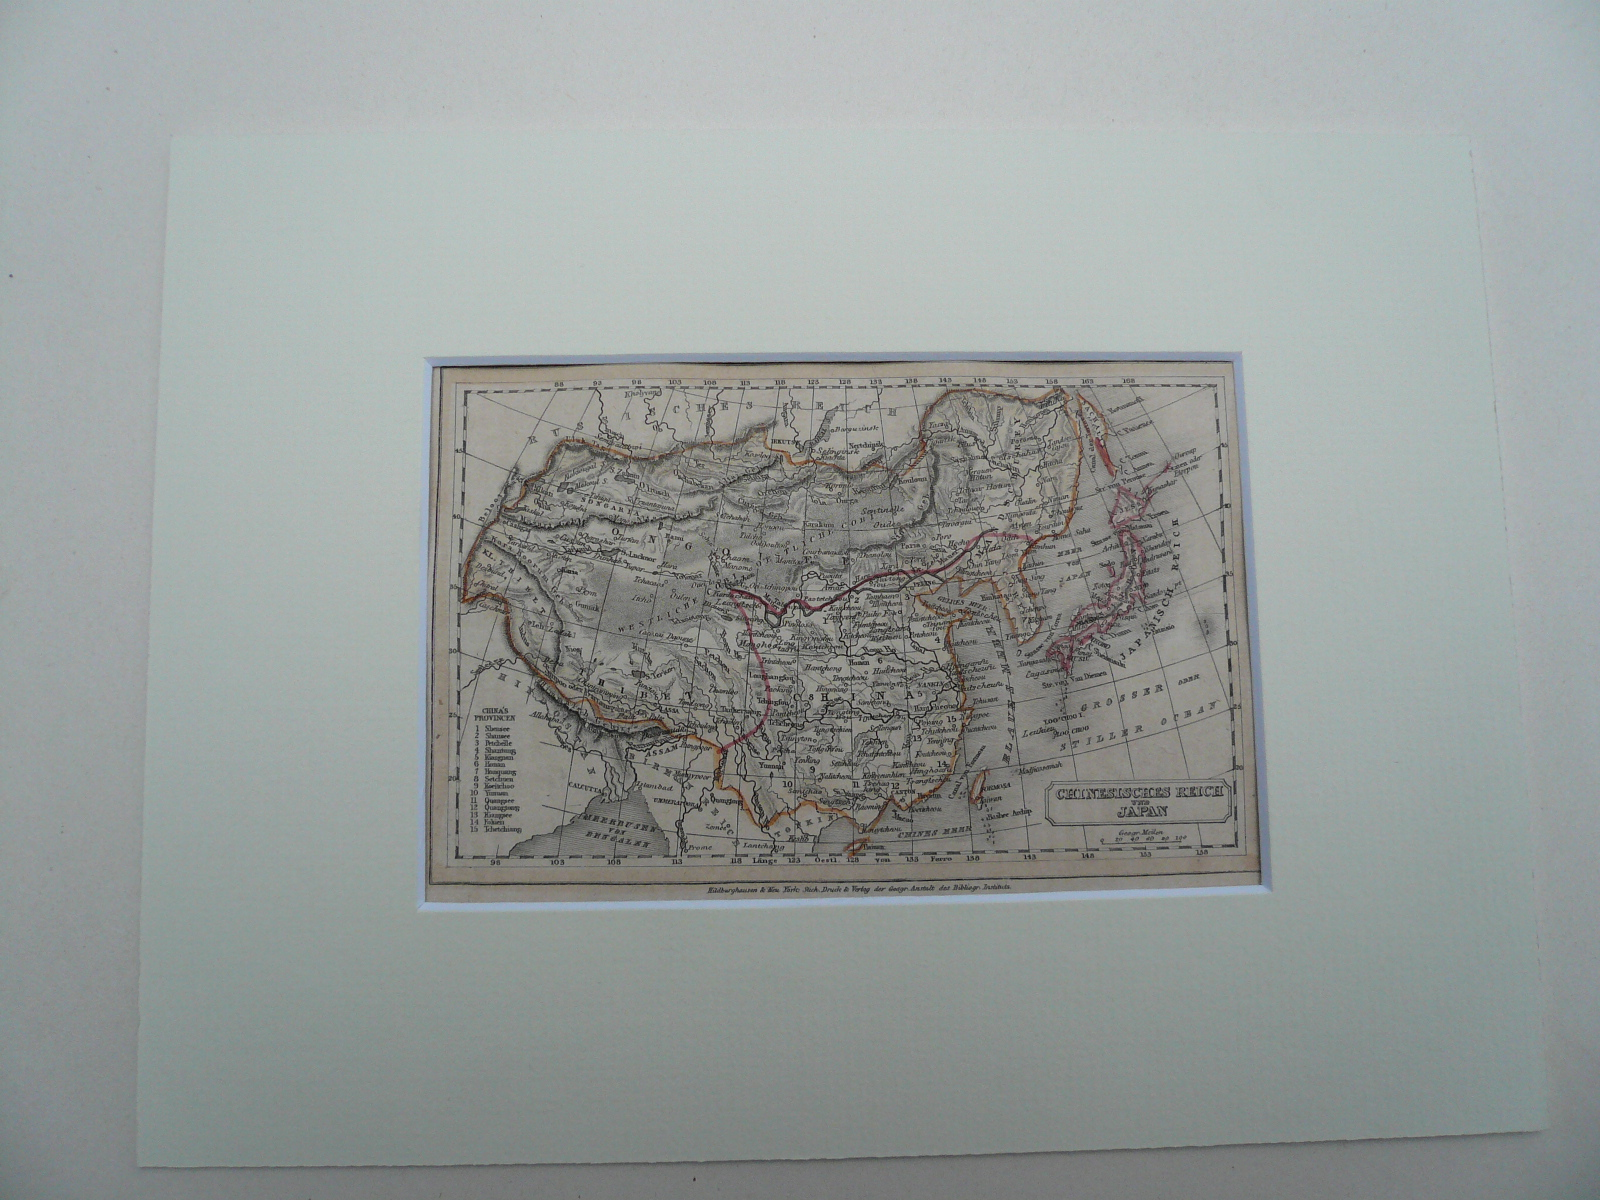 China/Japon, anno 1850, Steelengraving